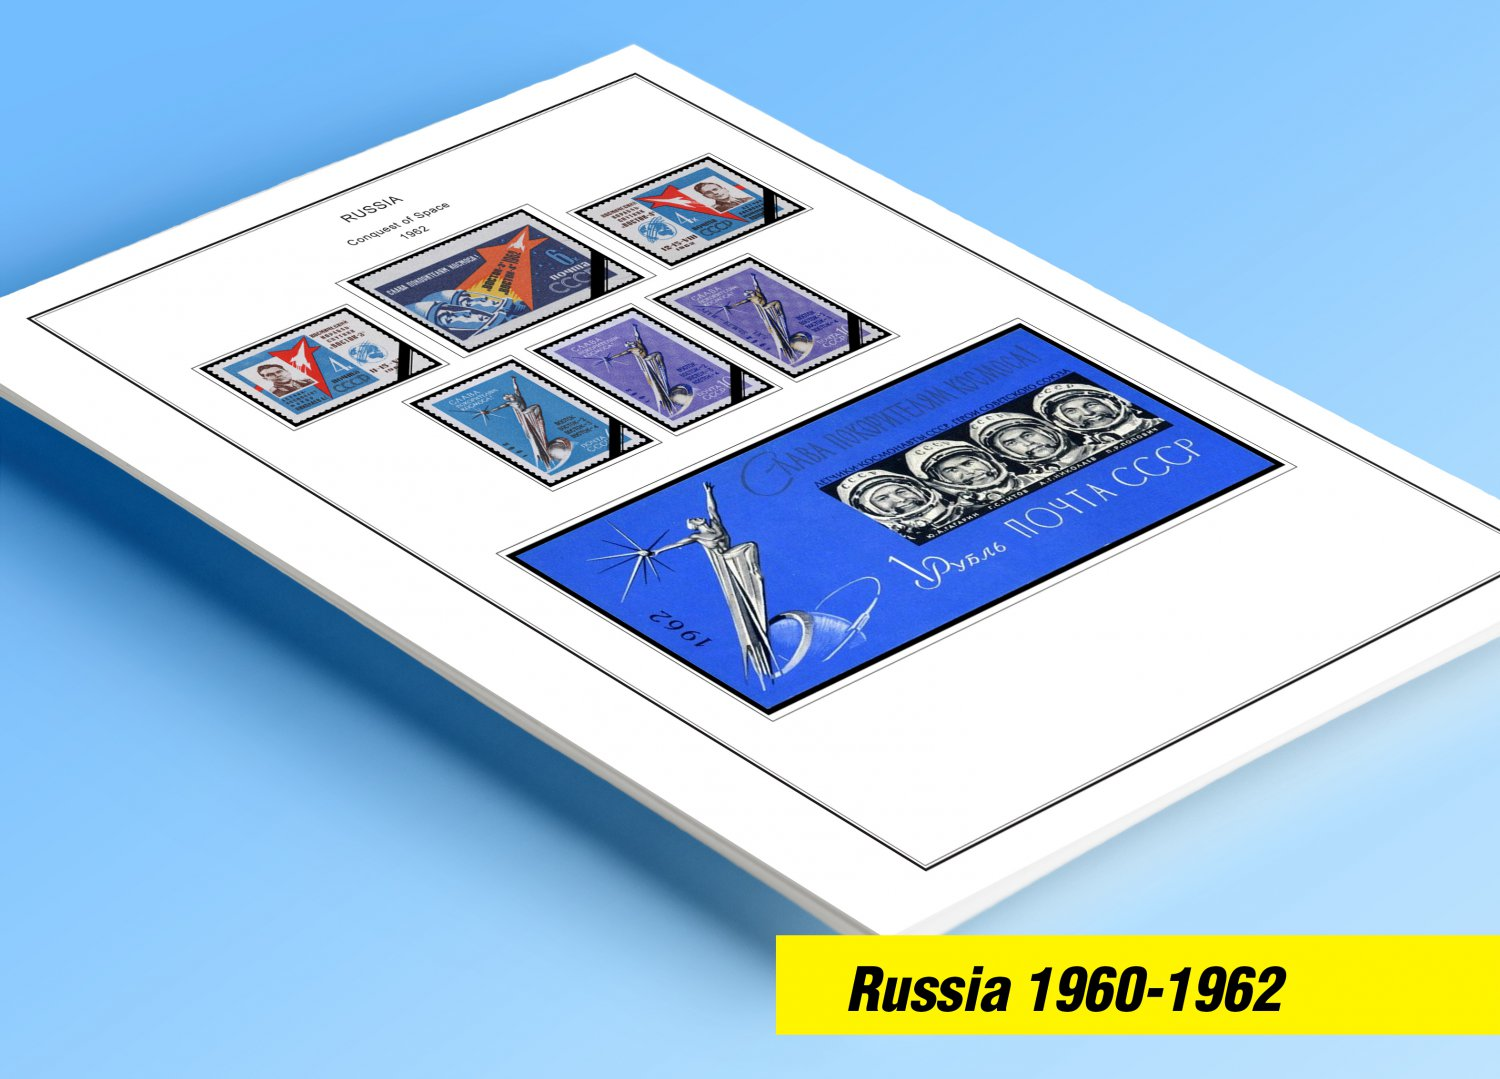 COLOR PRINTED RUSSIA 1960-1962 STAMP ALBUM PAGES (37 illustrated pages)